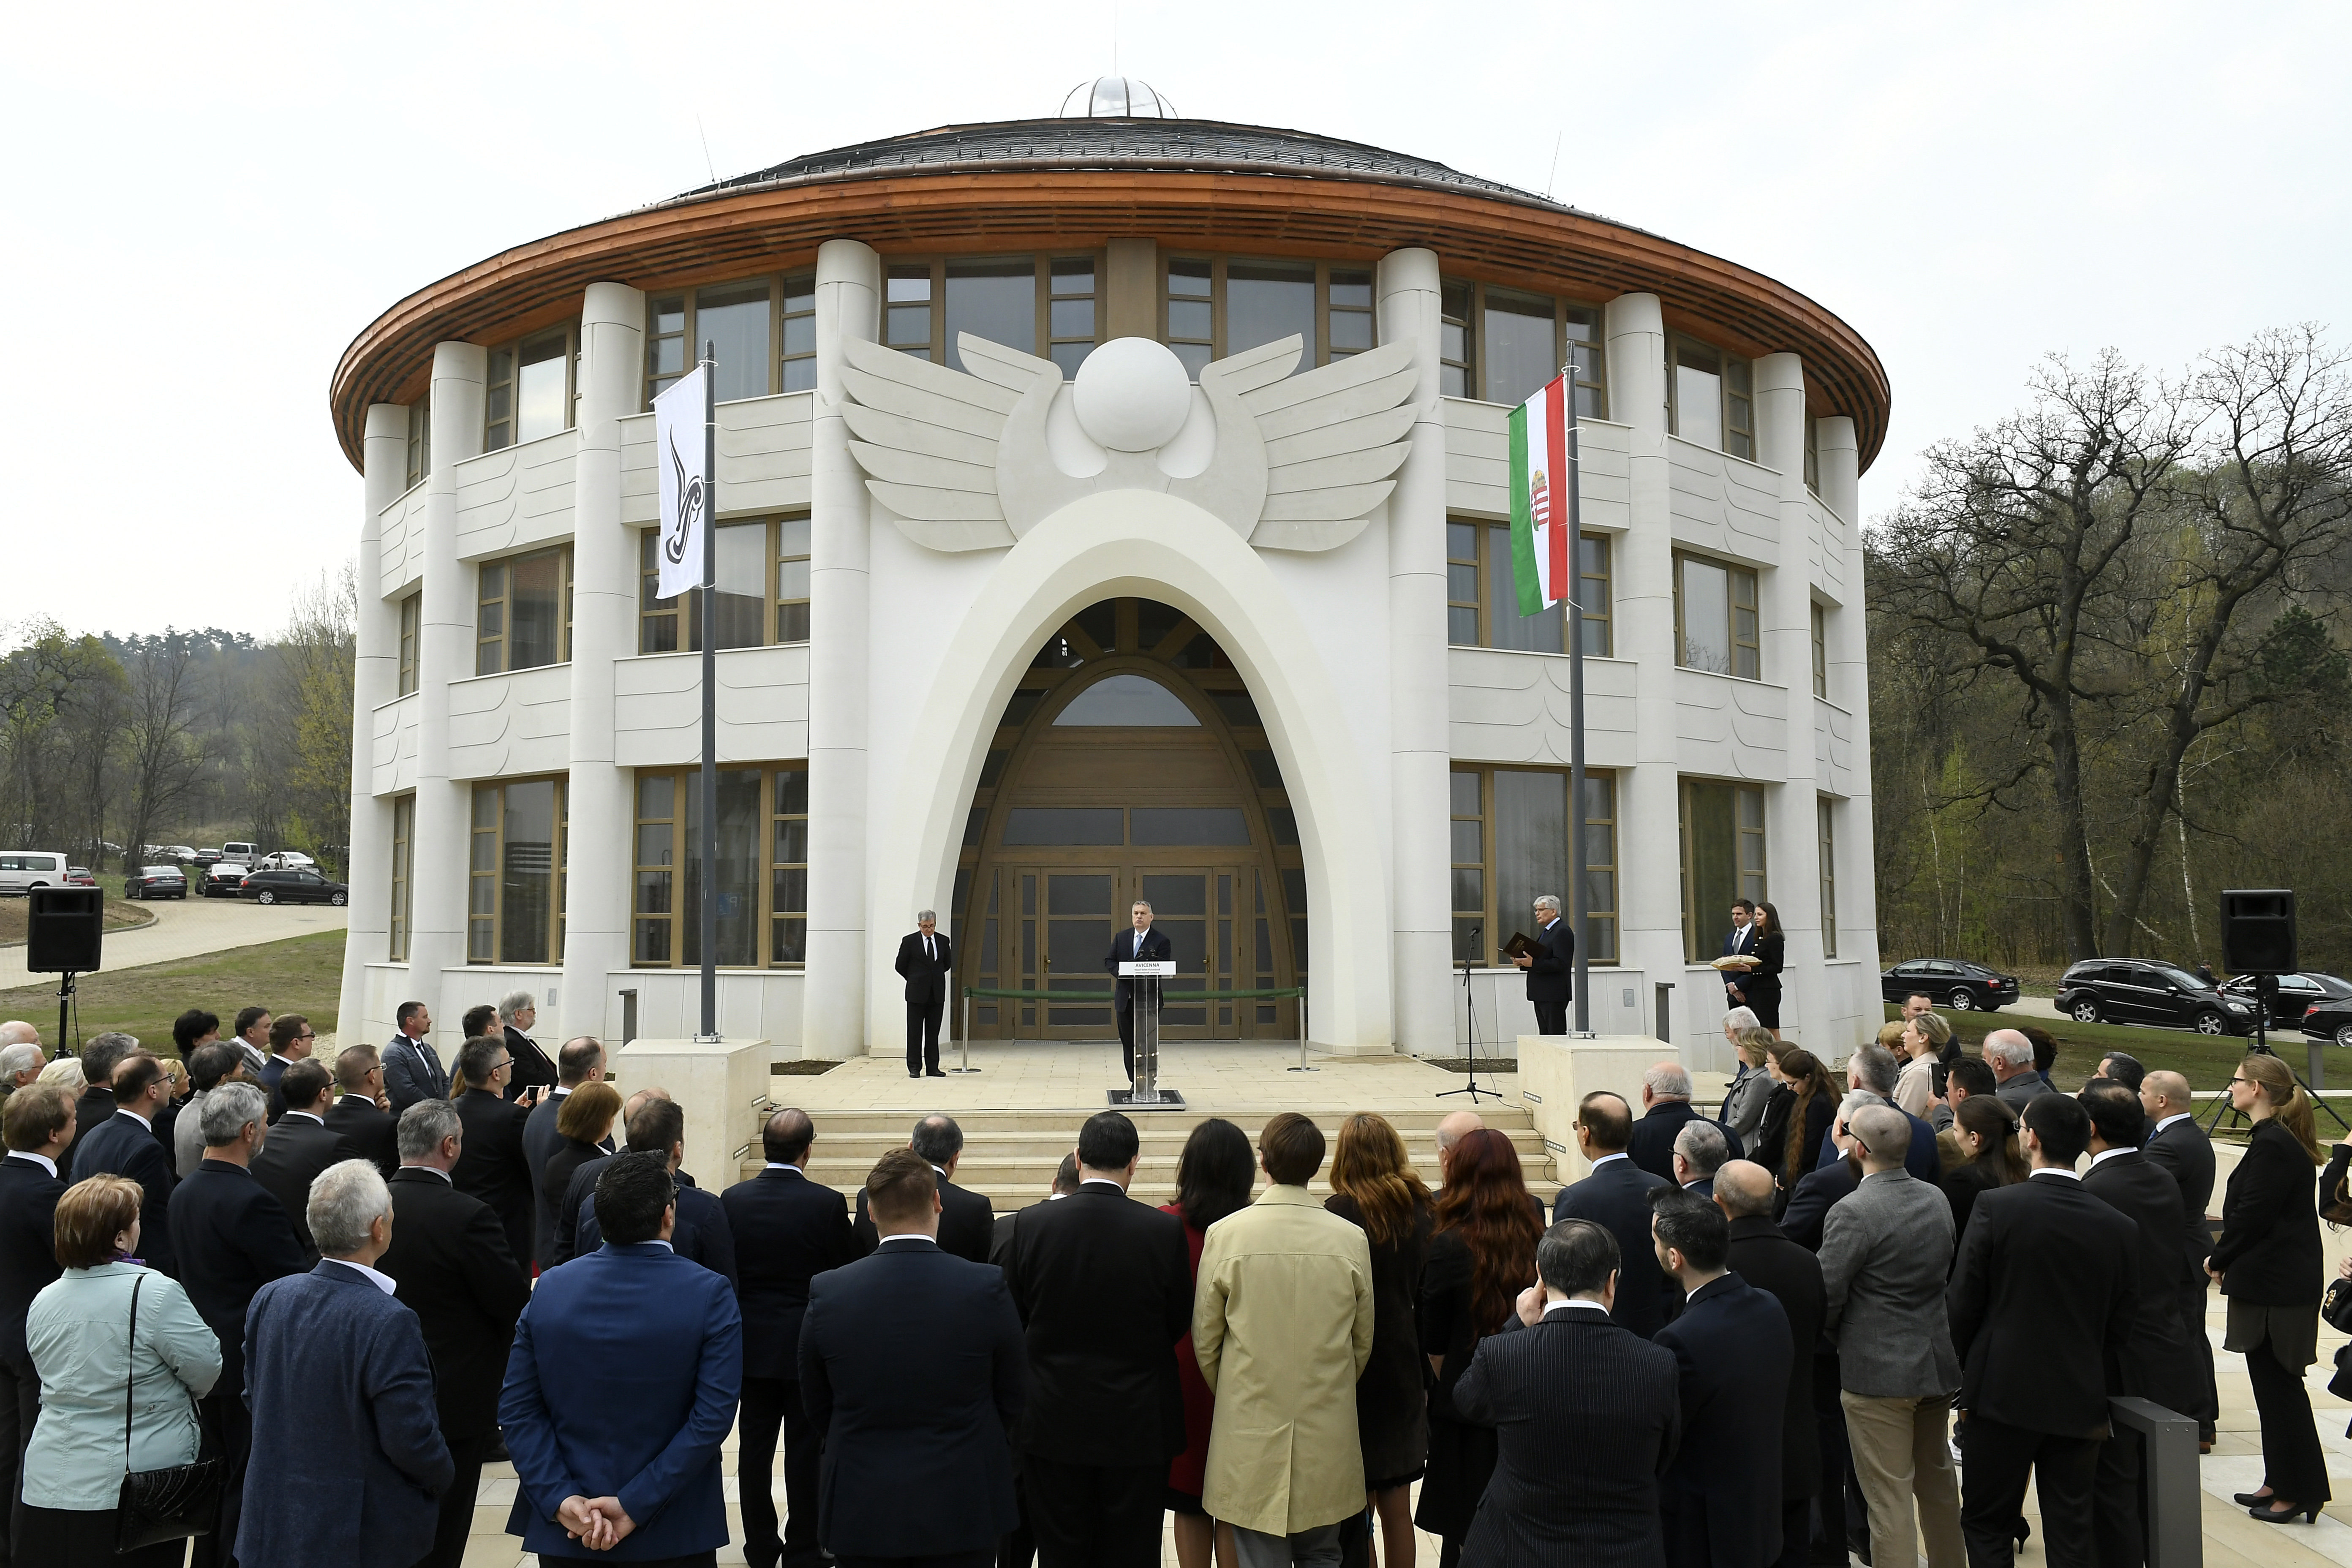 Orbán inaugurates Avicenna Institute of Middle Eastern Studies in Piliscsaba